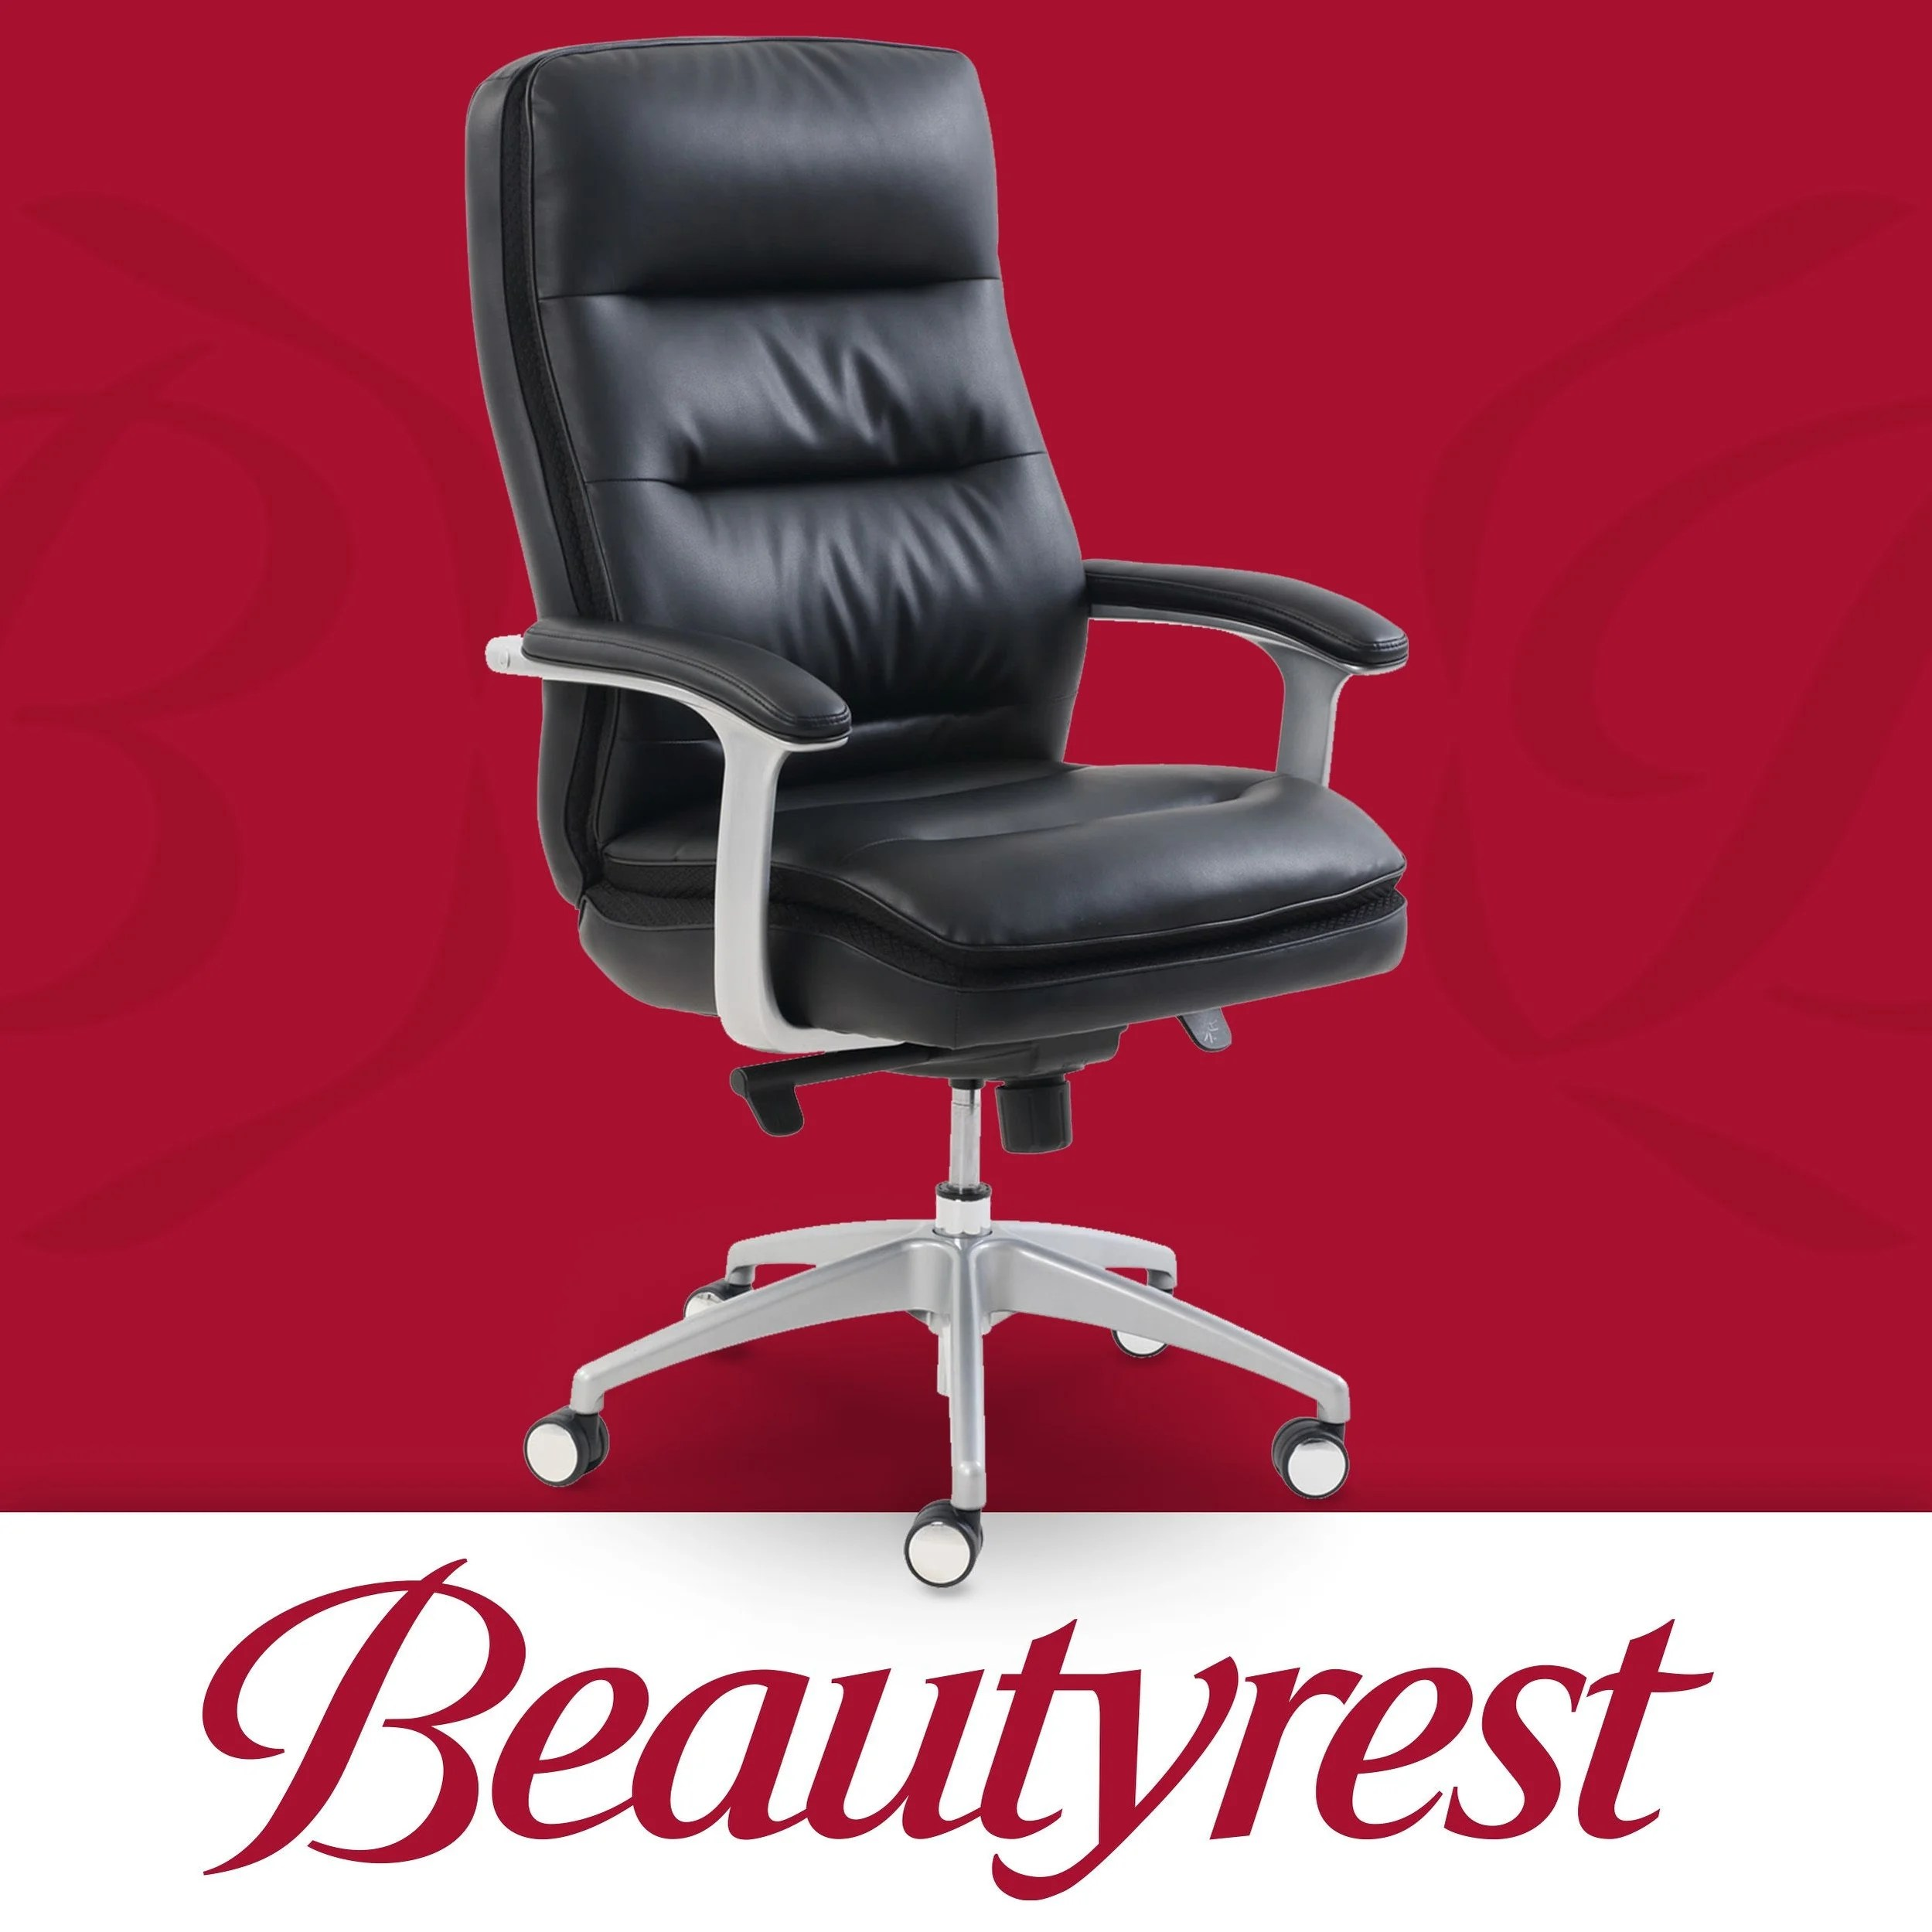 beautyrest platinum ergonomic executive office chair with memory foam black